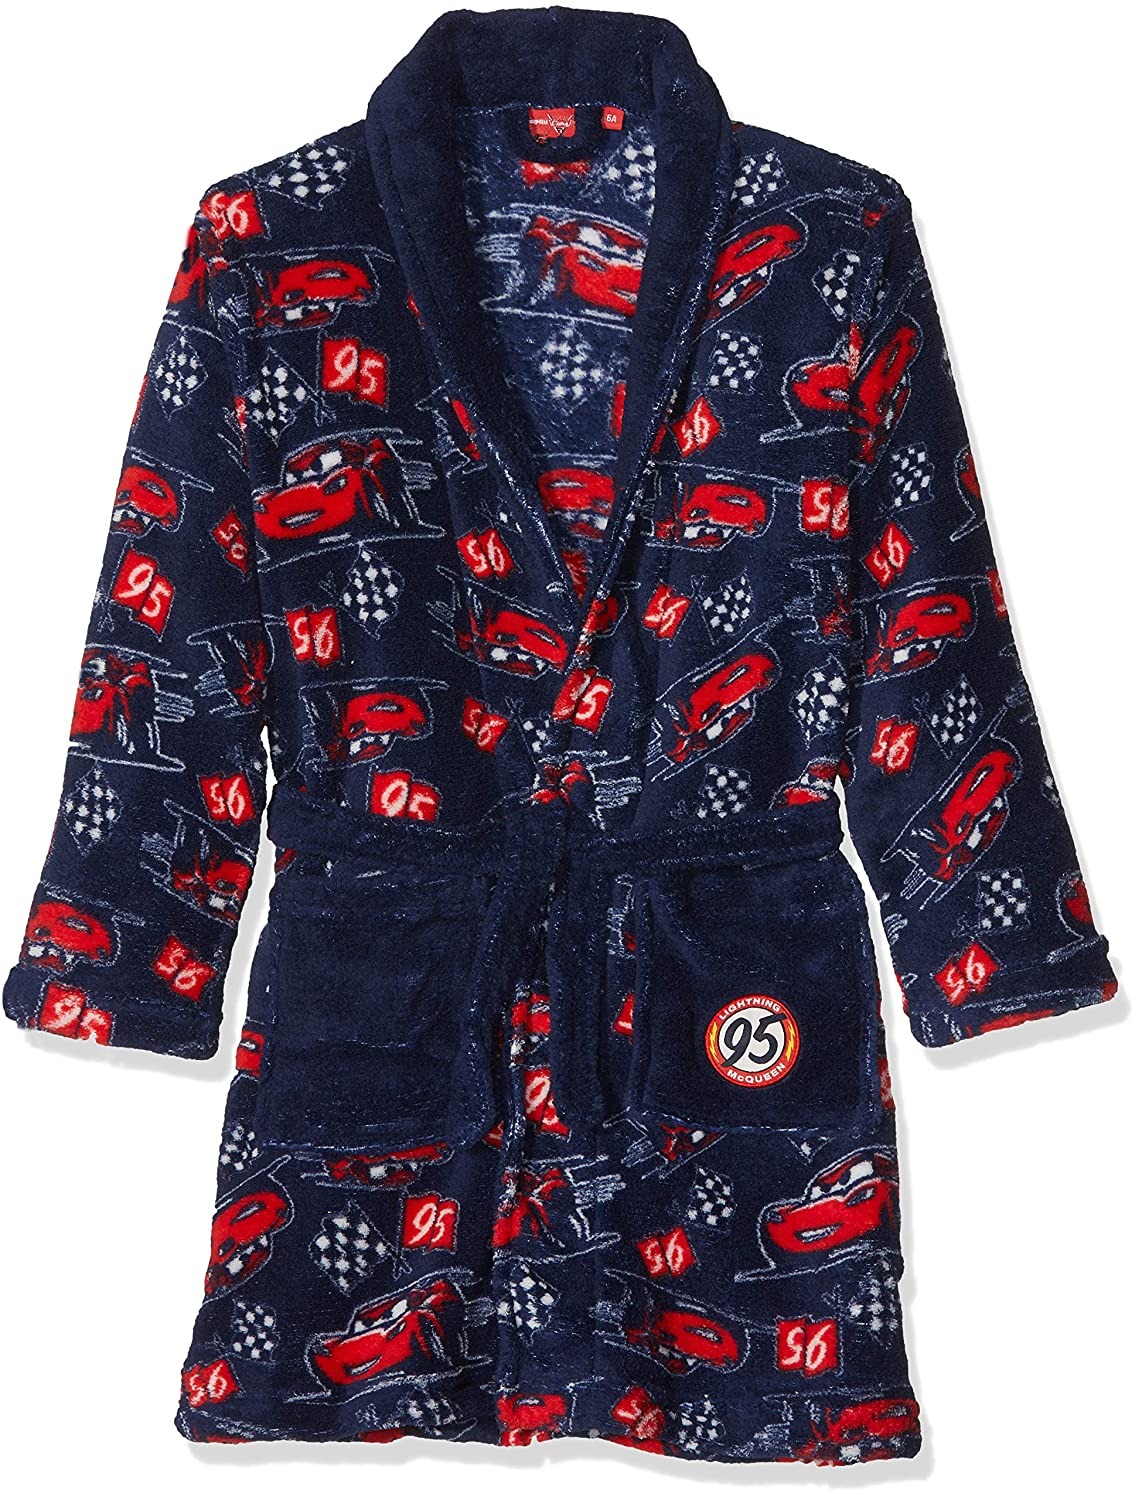 Disney Boy's Dressing Gown RH2068